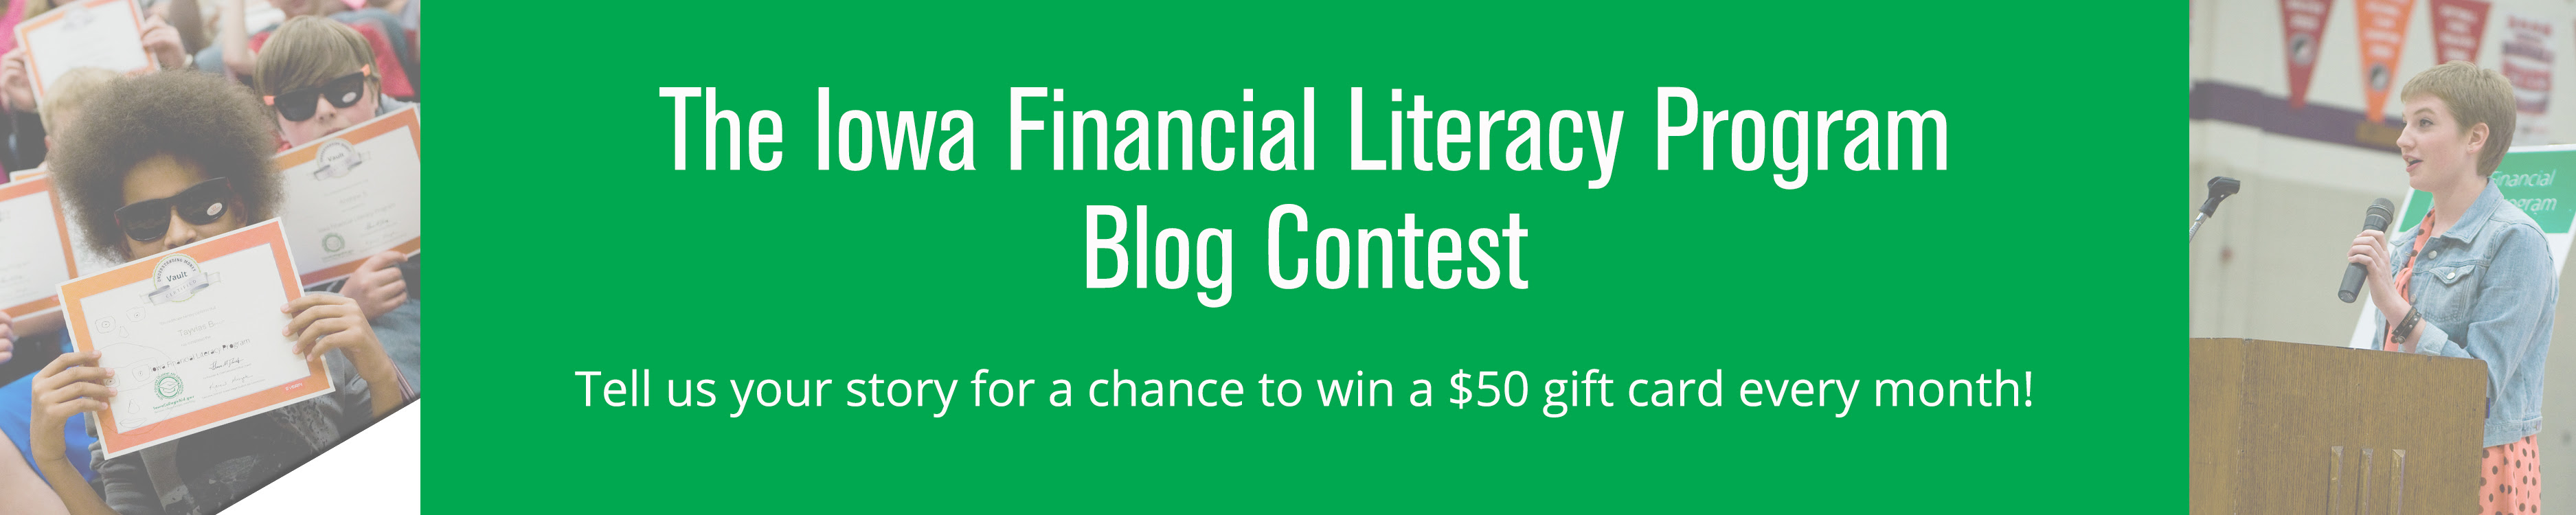 Iowa Financial Literacy Program Blog Contest